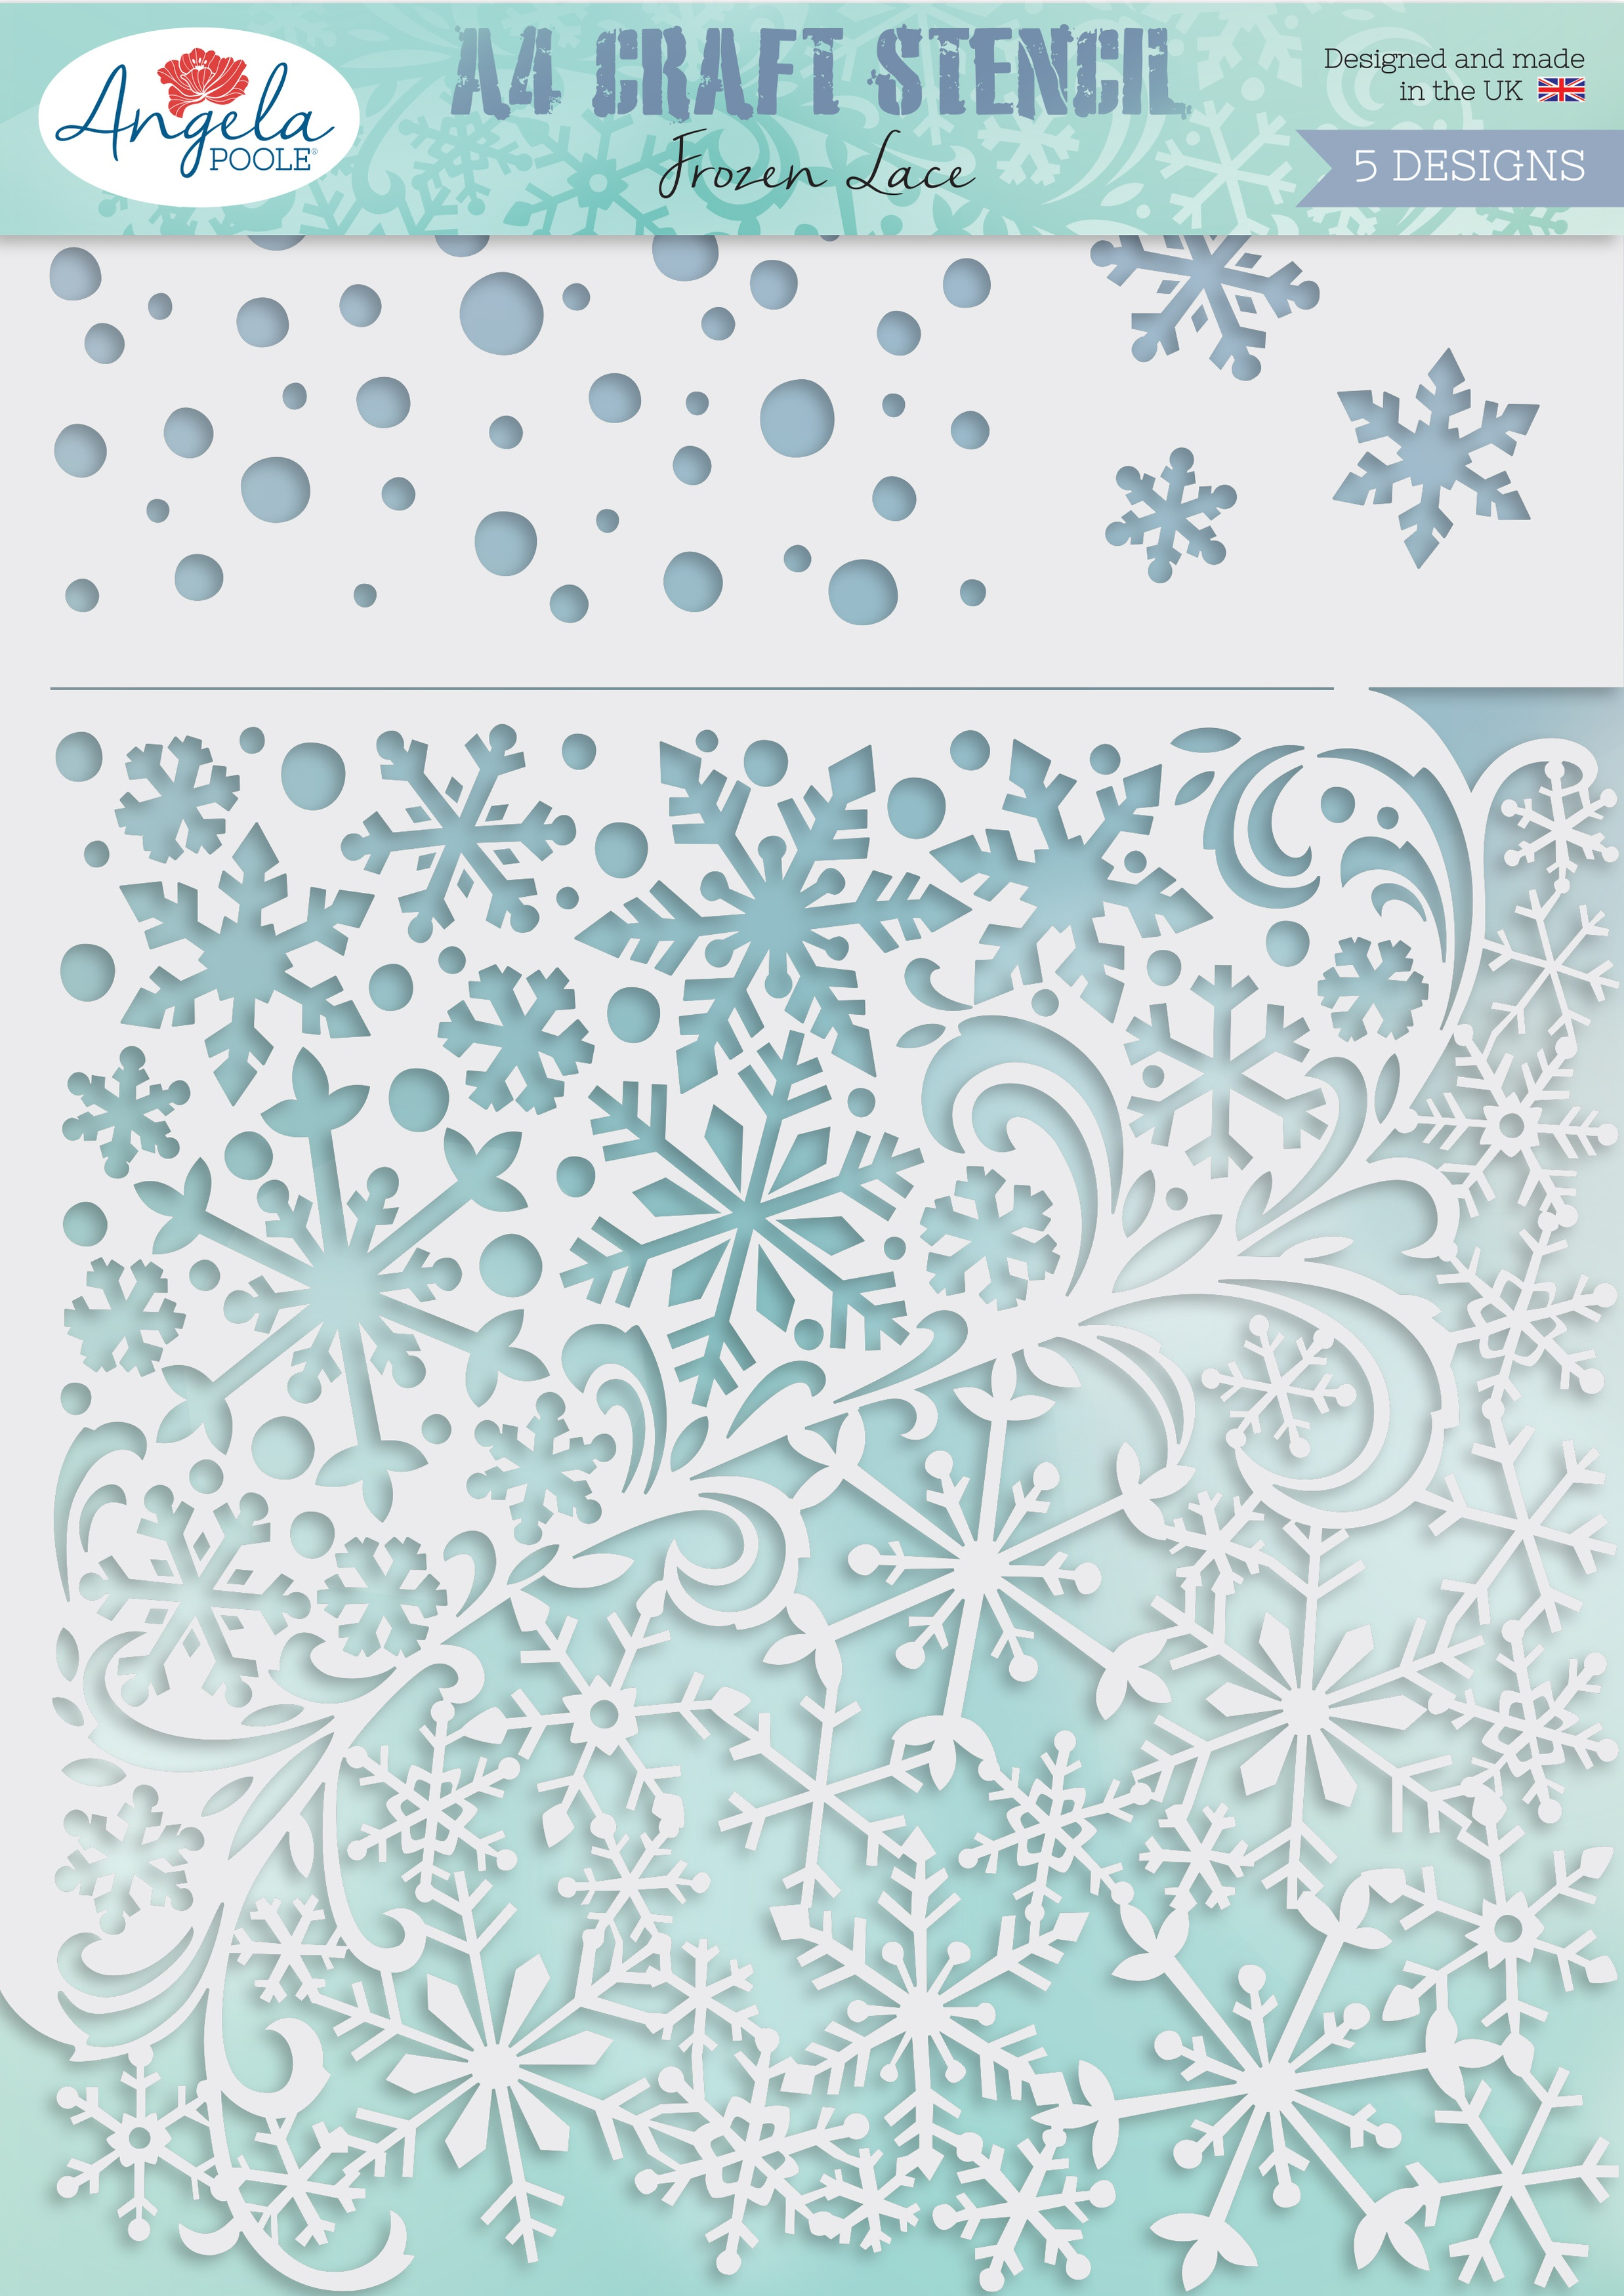 Angela Poole Craft Stencil A4-Frozen Lace